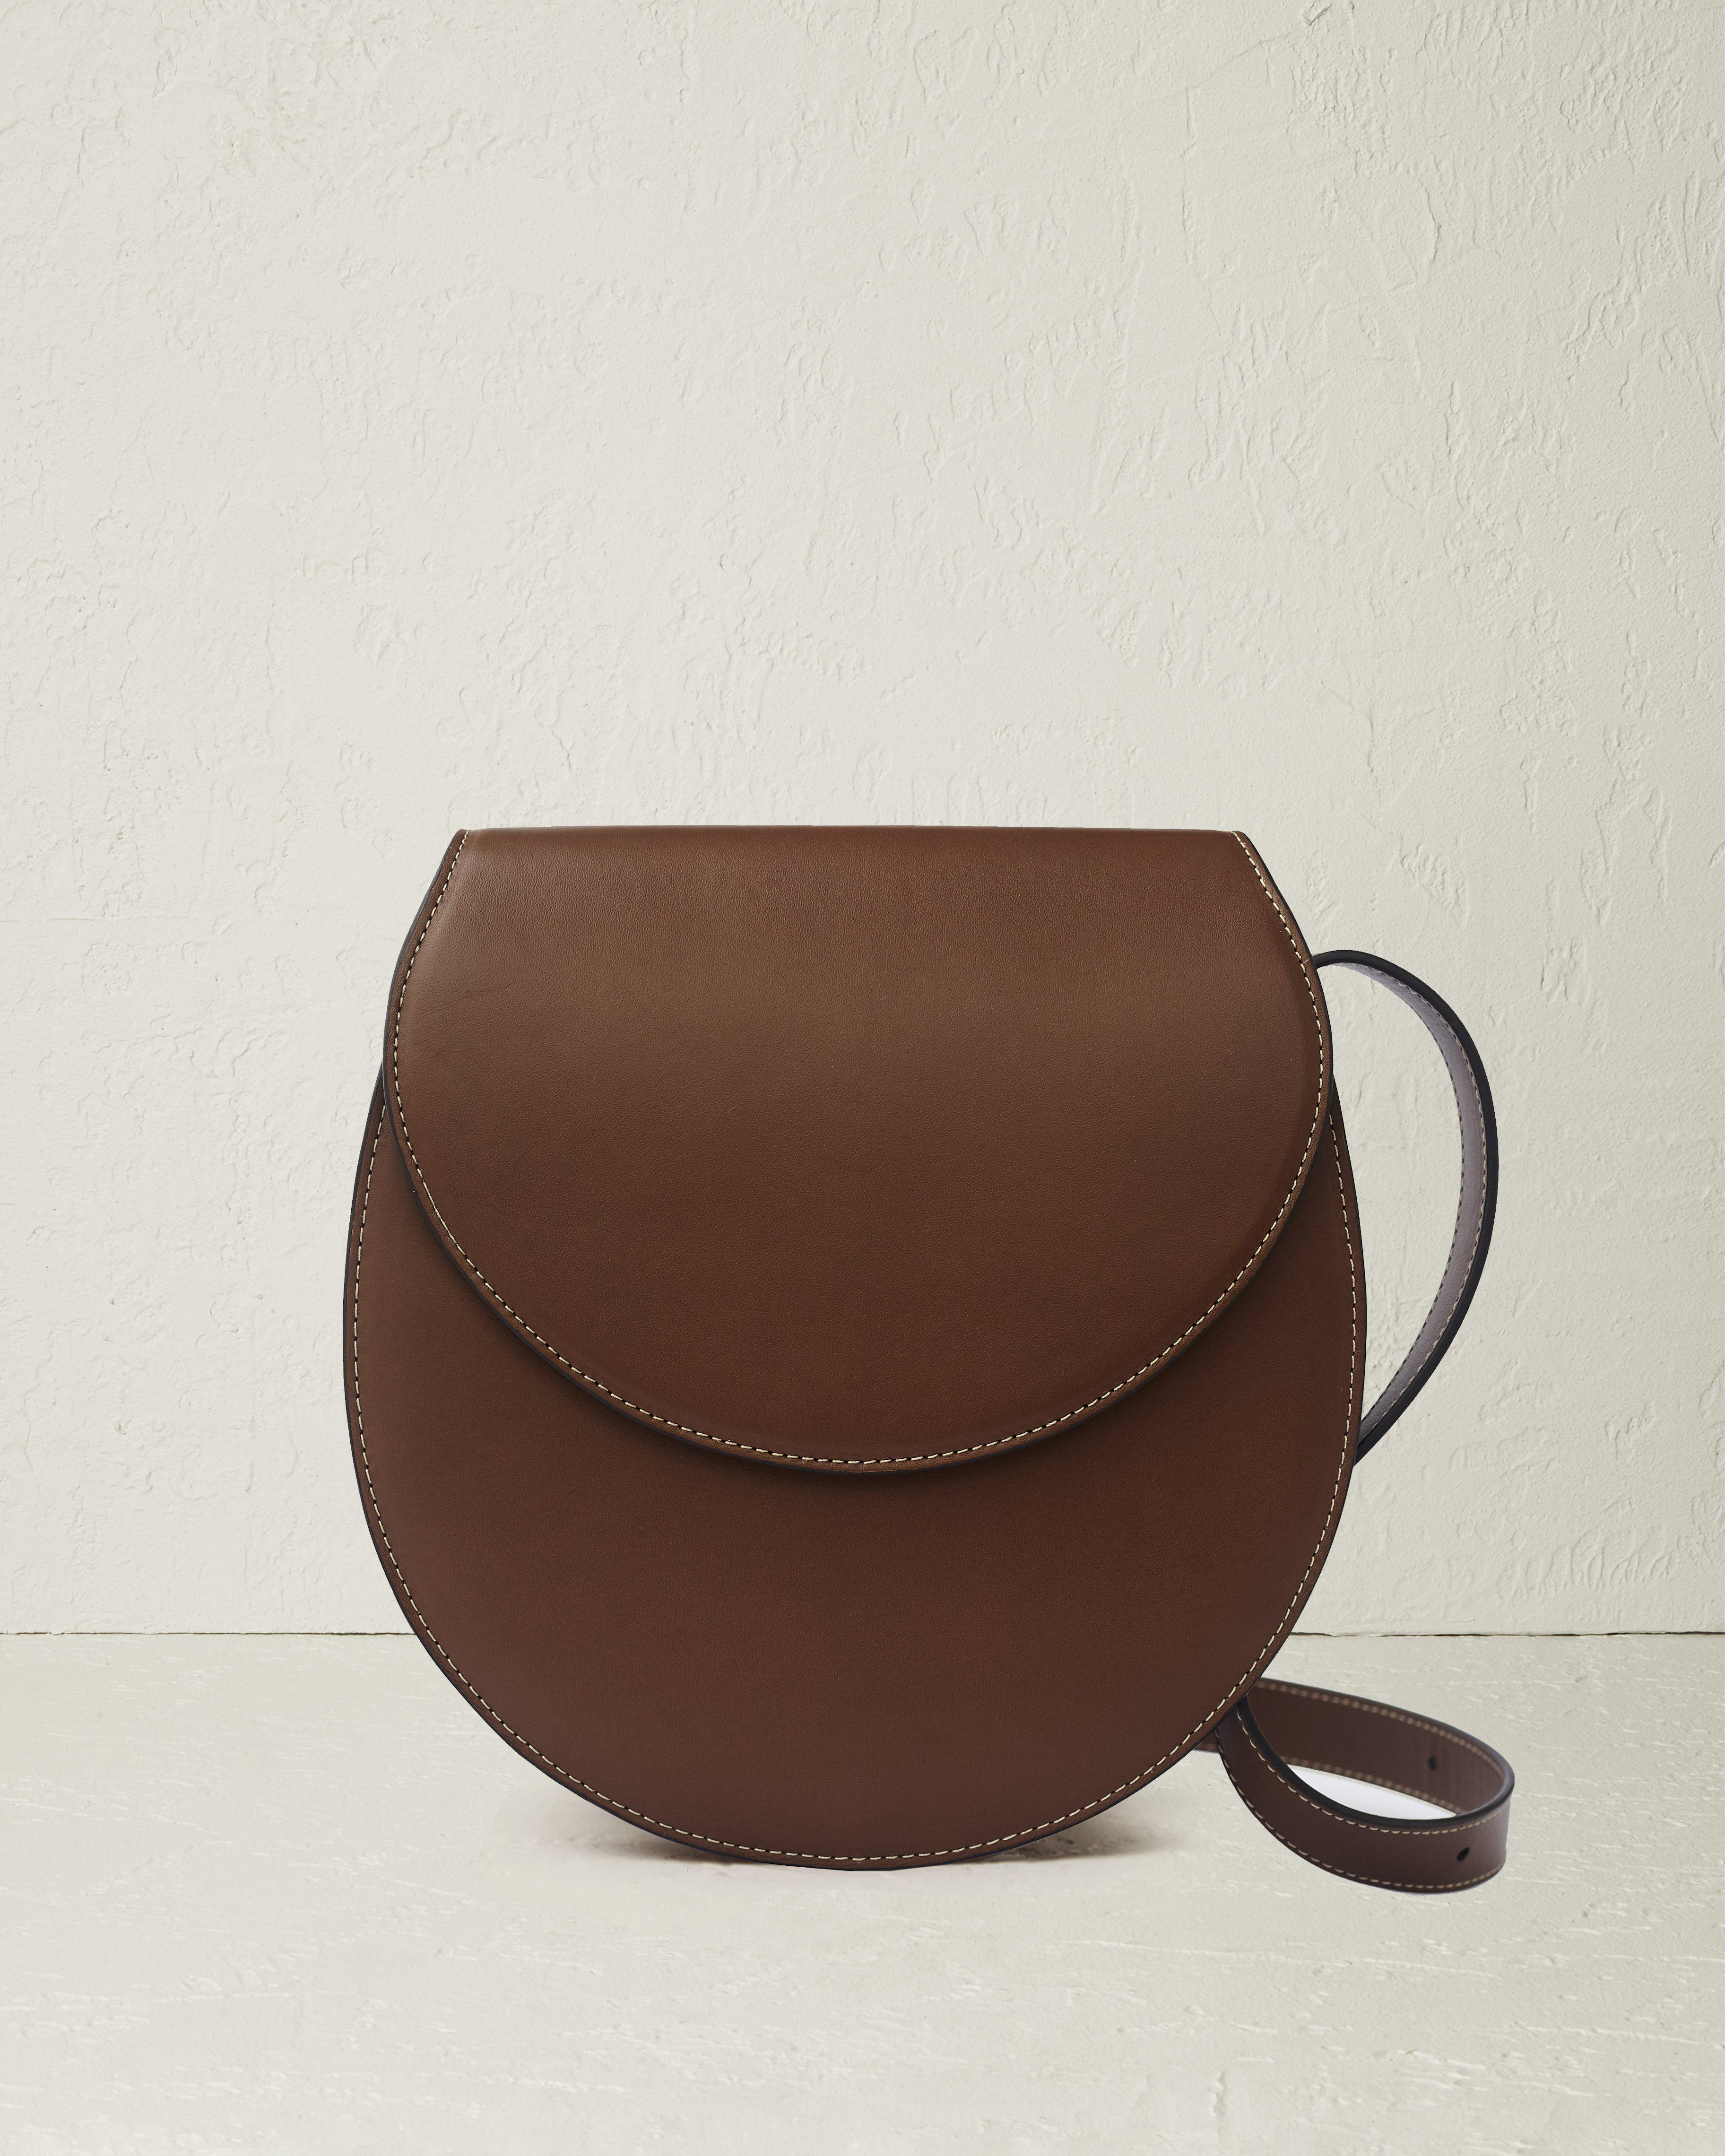 The Large Saddle in Nappa Leather